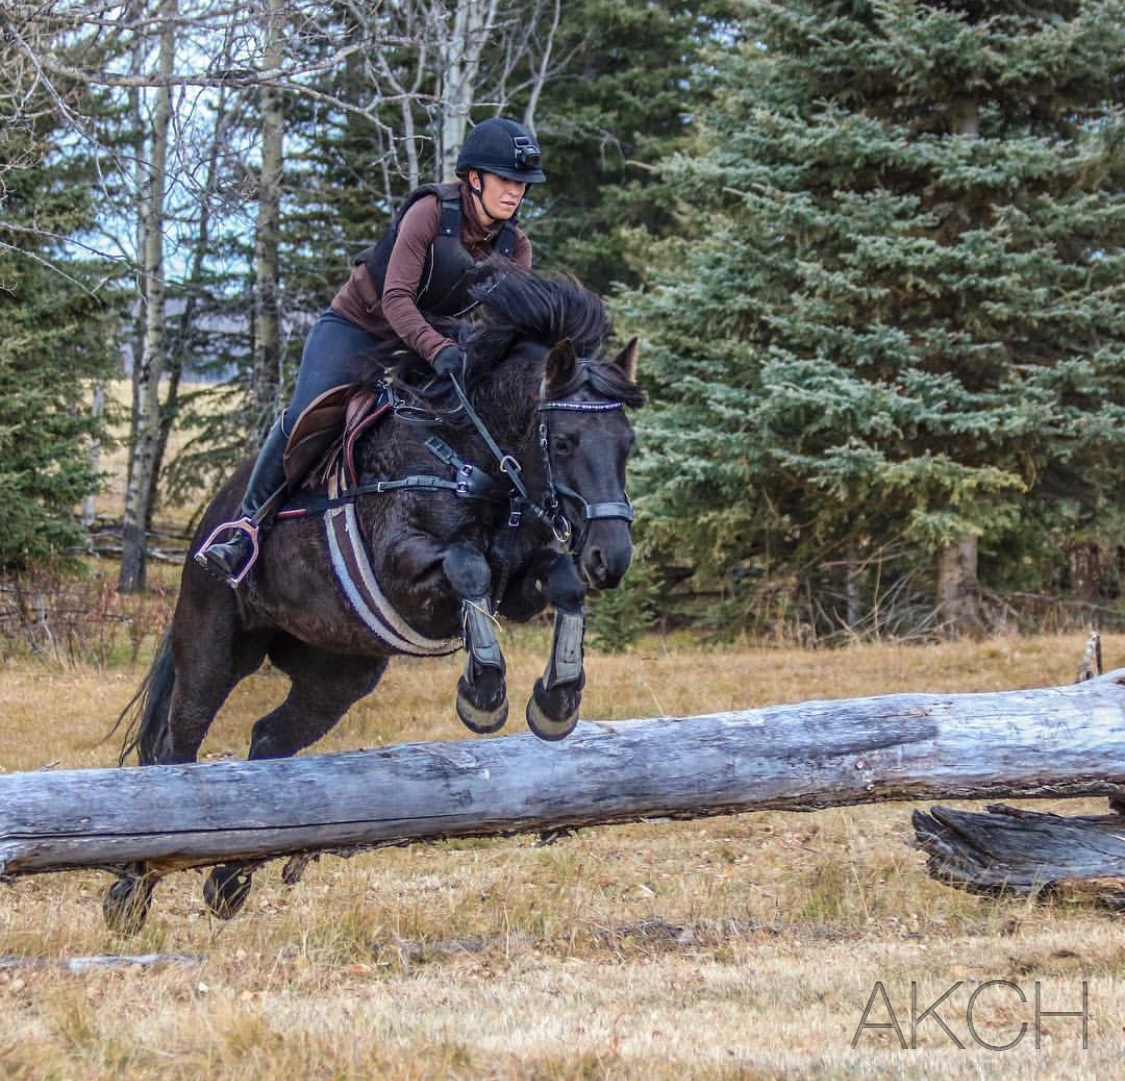 """Cache Phenom Zarra aka """"Costa"""" . Owned and ridden by Kelly Hamzic, Costa is competitive in Novice Eventing, 3' Hunters, 3' Jumpers, and Amateurs Extreme Cowboy Challenge. Photo: Hamzic Photography."""